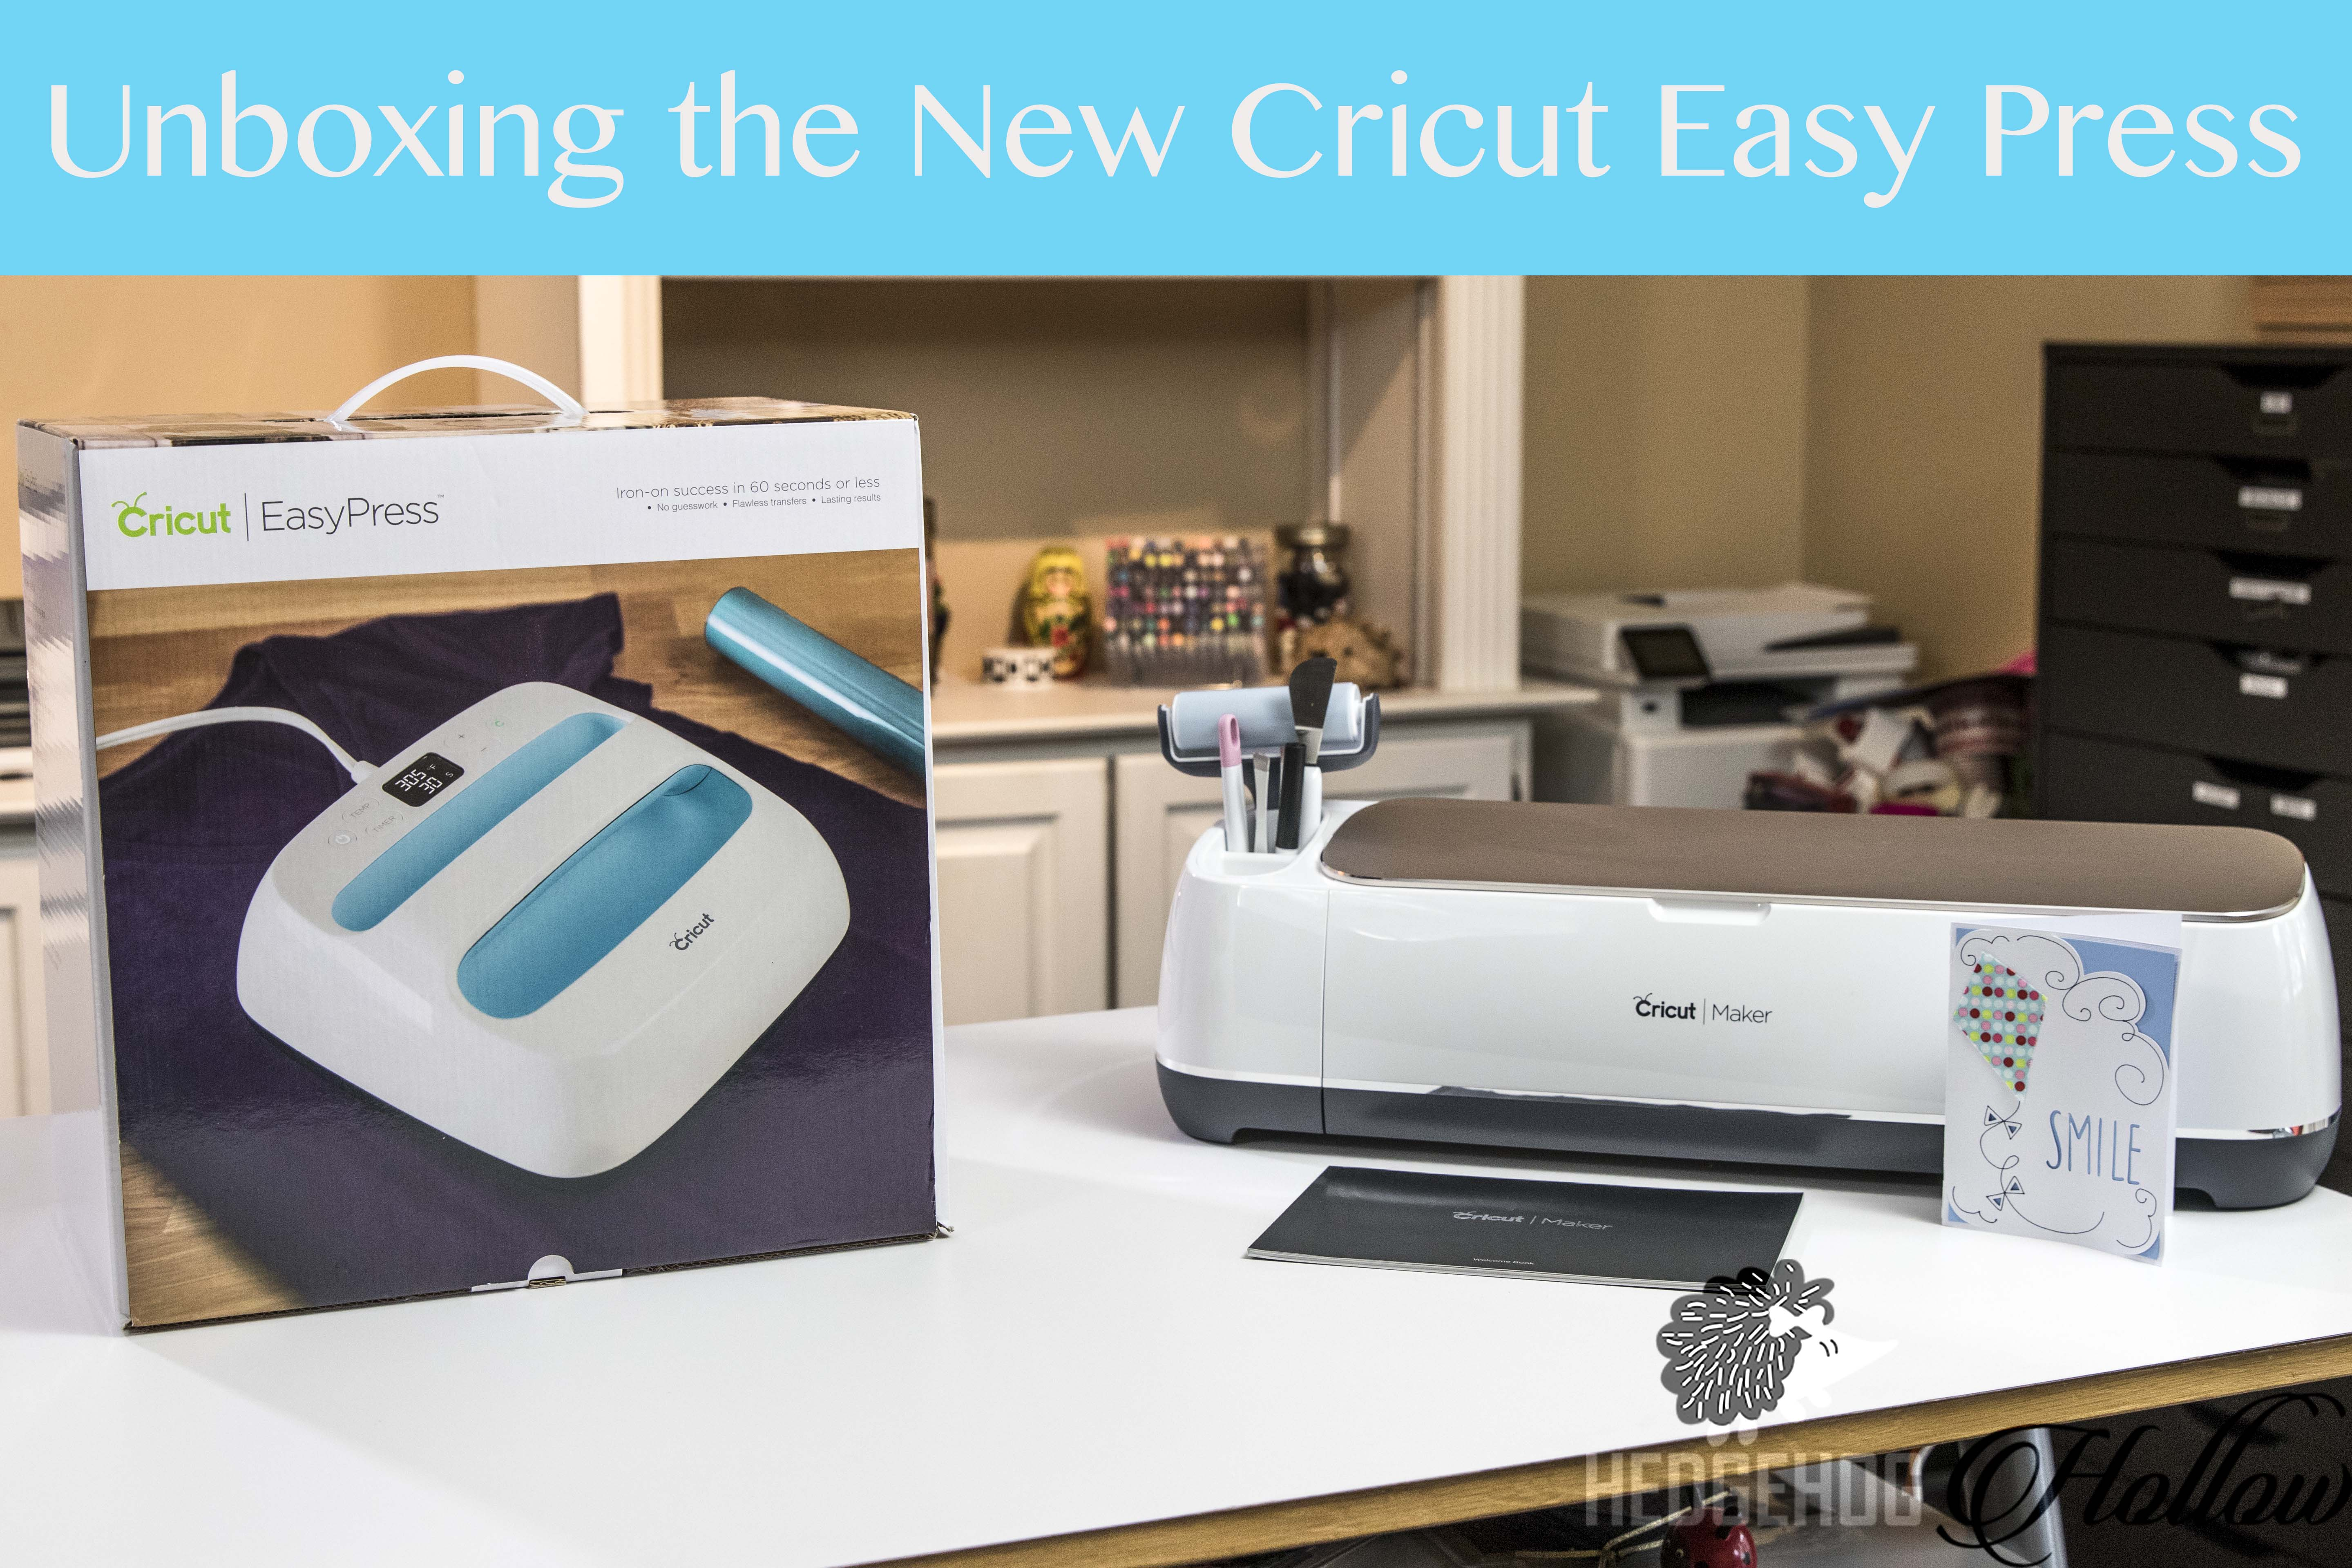 Unboxing and Getting Started with the Circuit Easy Press